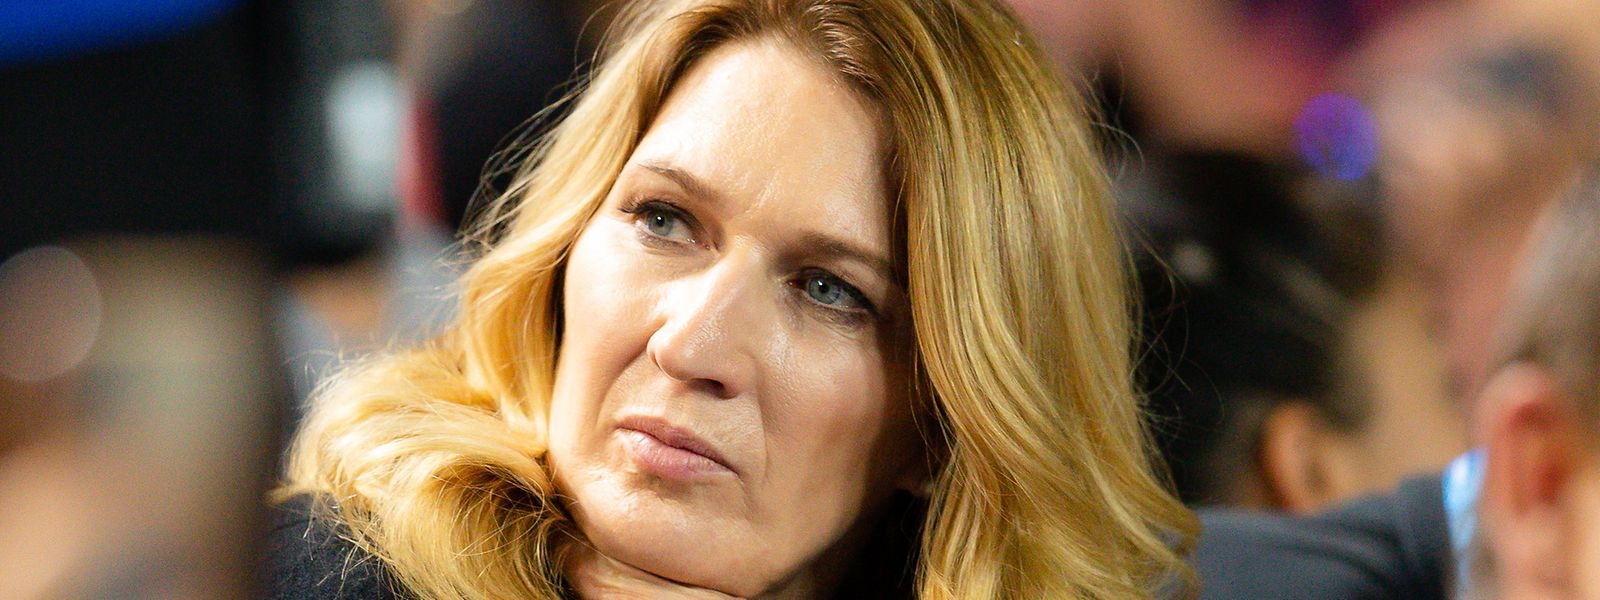 Steffi Graf gewann in ihrer Karriere 22 Grand-Slam-Titel.